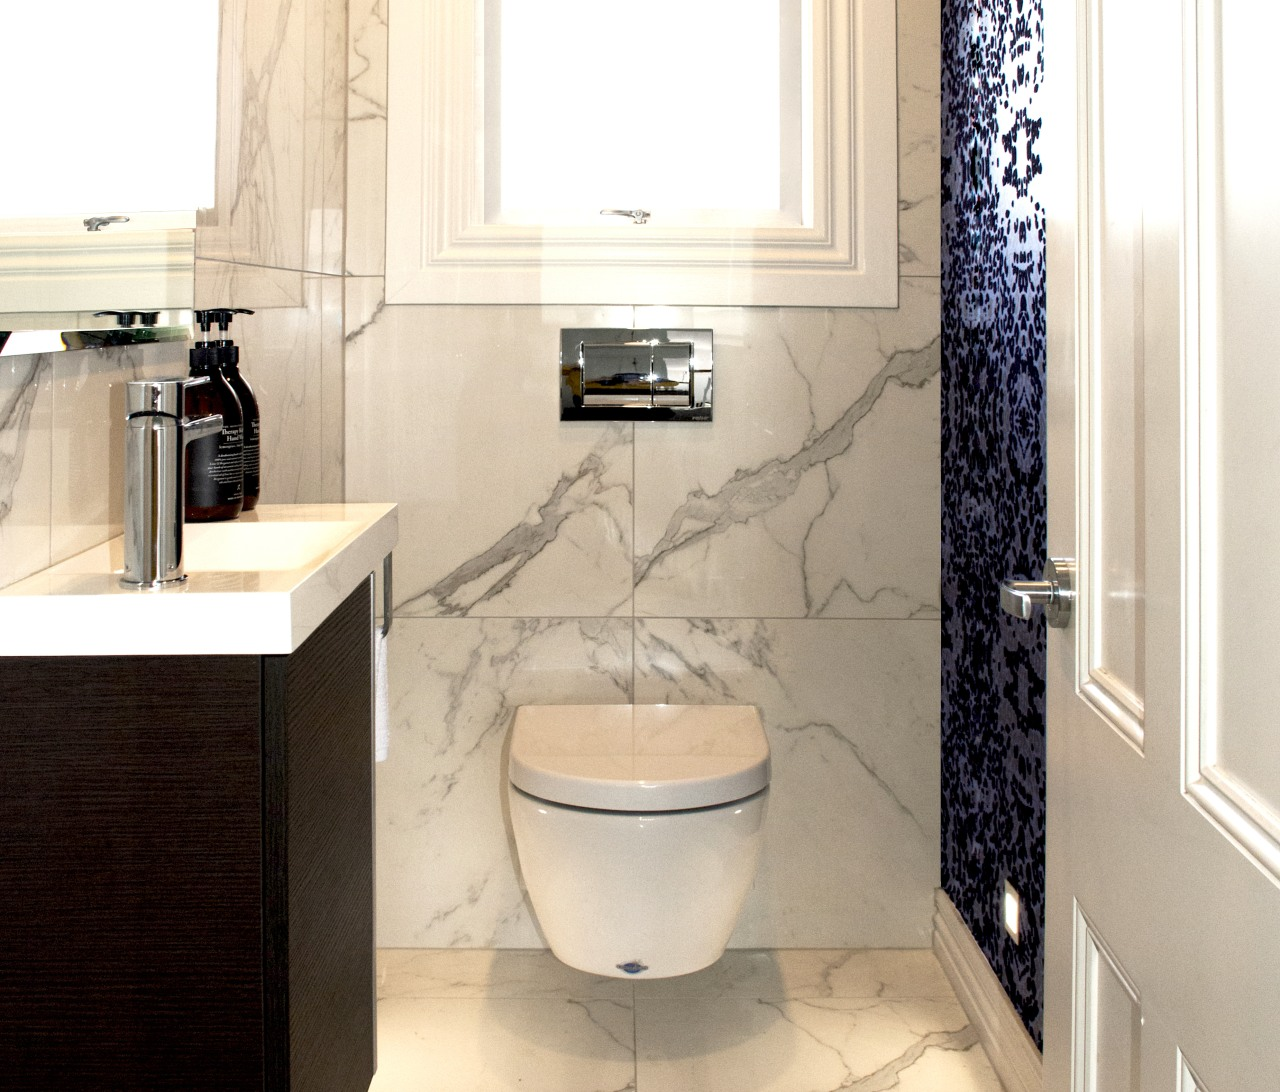 Being used by solely the children, the wallpaper architecture, bathroom, bathroom accessory, bathroom cabinet, bidet, floor, home, interior design, wallpaper, marble, material property, plumbing, plumbing fixture, property, room, sink, tap, tile, toilet, toilet seat, wall, white